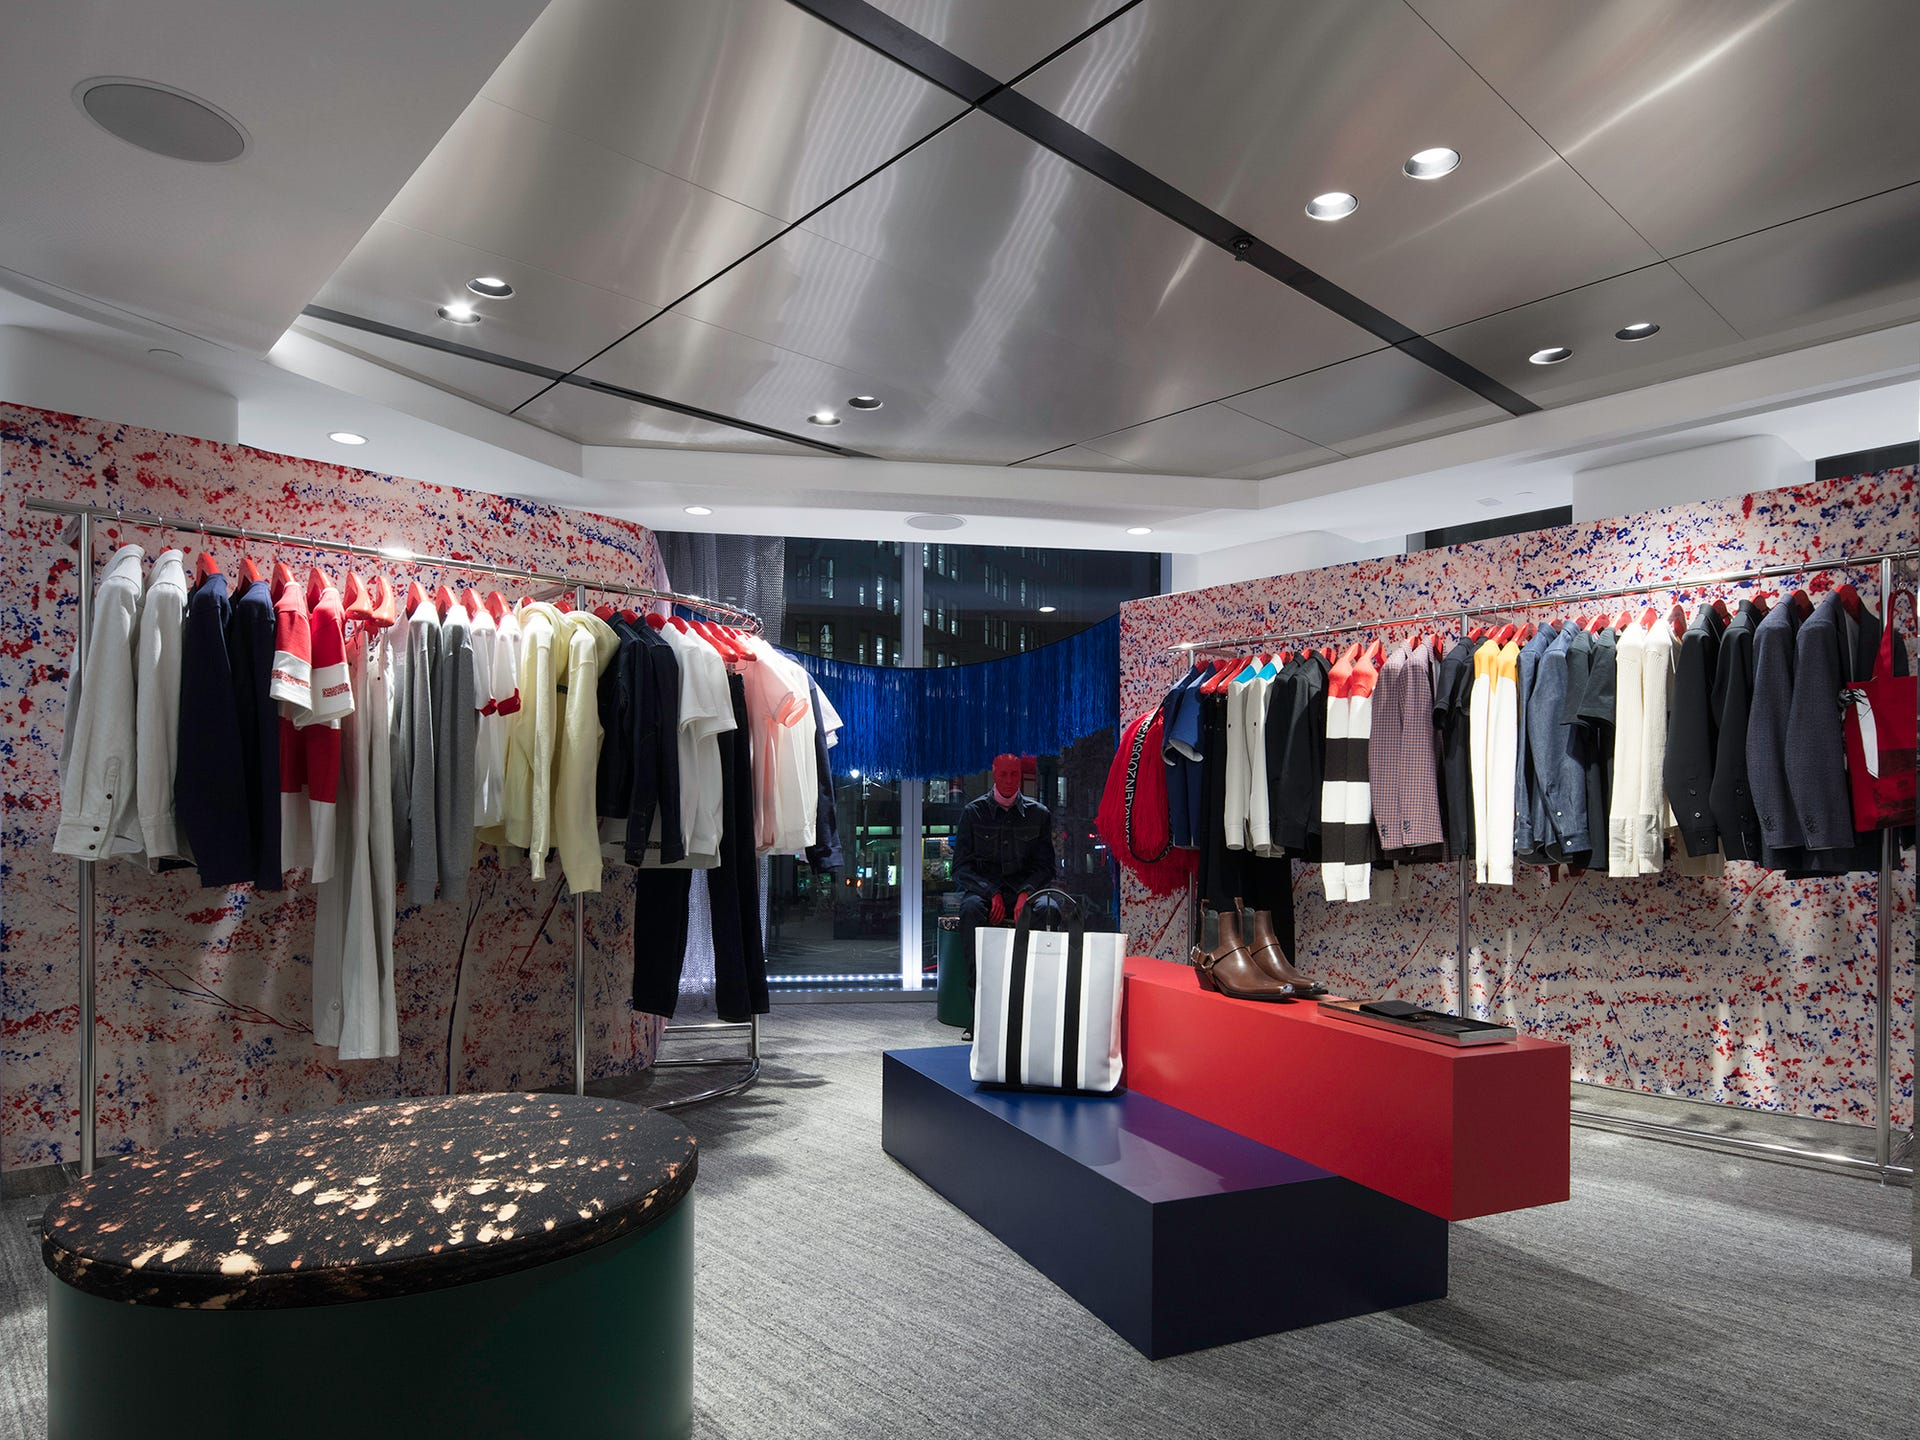 bd4ed00ee0d The Nordstrom NYC Men's Store offers cocktails and convenience